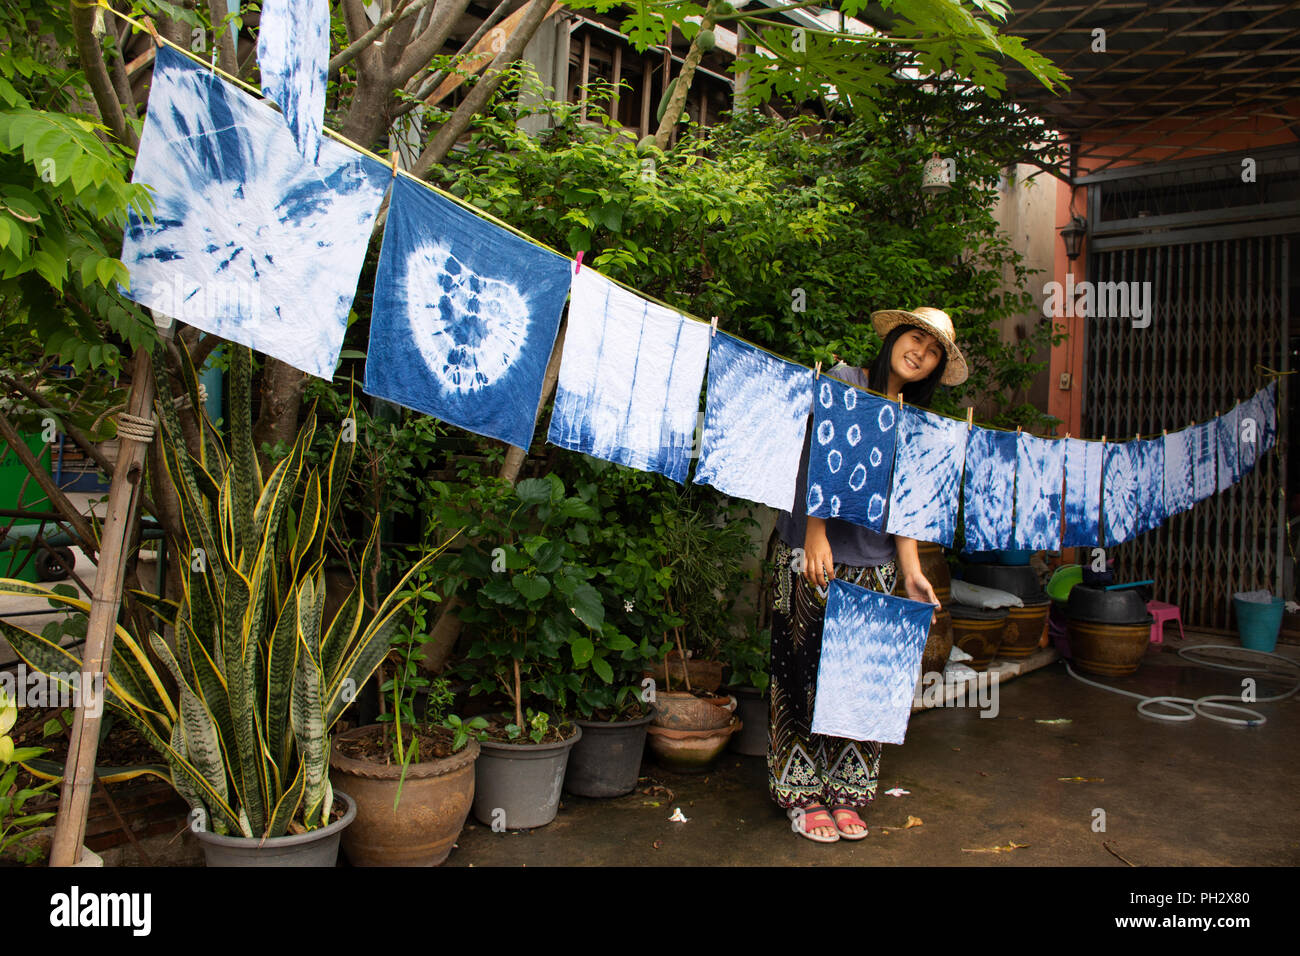 b9582f4149ac Thai women tie batik dyeing handkerchief tie batik indigo color or mauhom  color and hanging process dry clothes in the sun at garden outdoor in Nontha